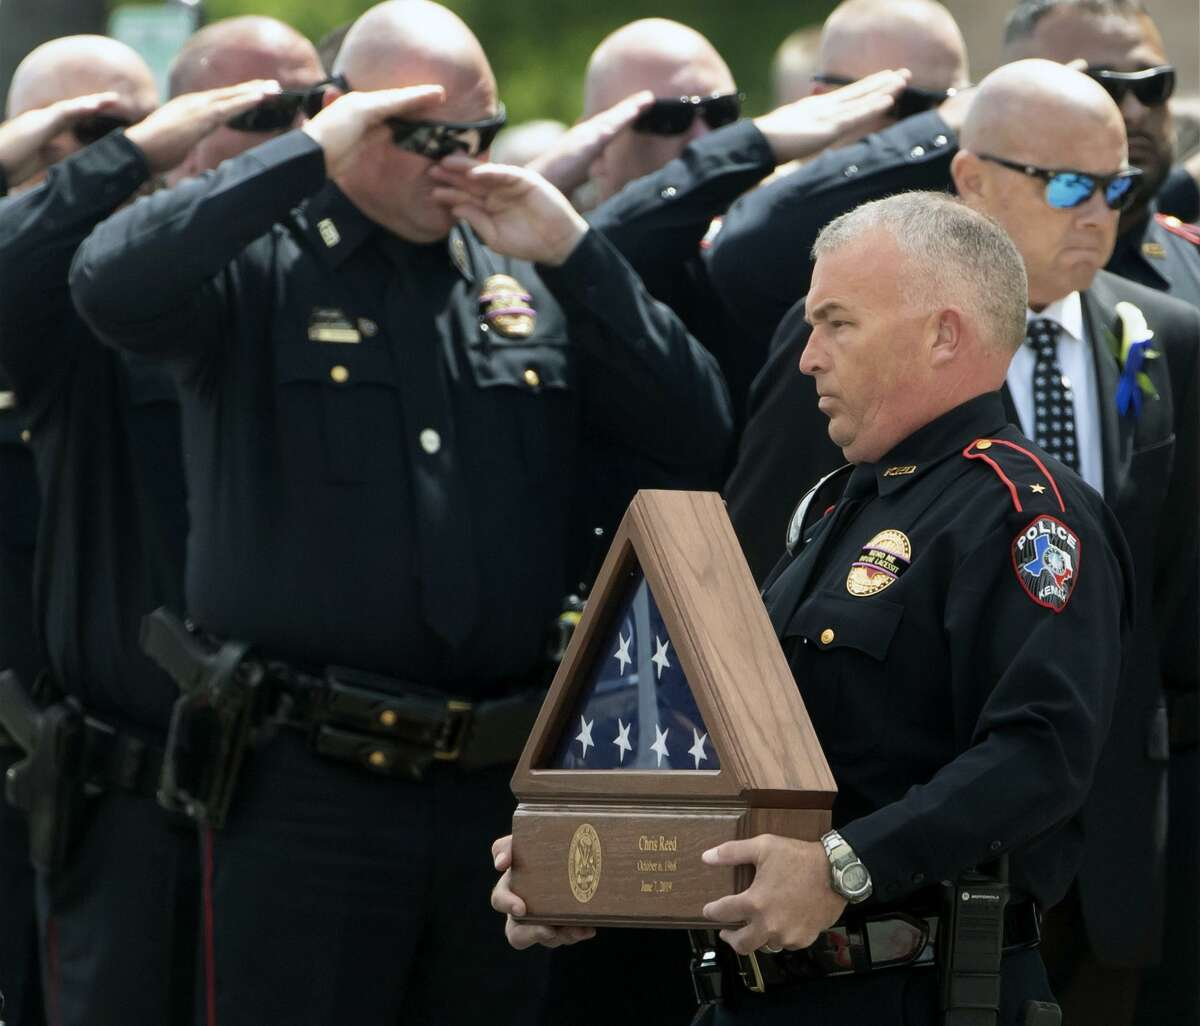 Kemah Police officers salute as a framed U.S. flag and an urn bearing the ashes of Kemah Police Chief Chris Reed are carried from Clear Creek Community Church following a memorial service in League City, Texas on Friday, June 14, 2019. Kemah Police officers salute as a framed U.S. flag and an urn bearing the ashes of Kemah Police Chief Chris Reed are carried from Clear Creek Community Church following a memorial service in League City, Texas on Friday, June 14, 2019. The 50-year-old police chief was thrown overboard without a life jacket when a wave from a large passing vessel struck his boat.